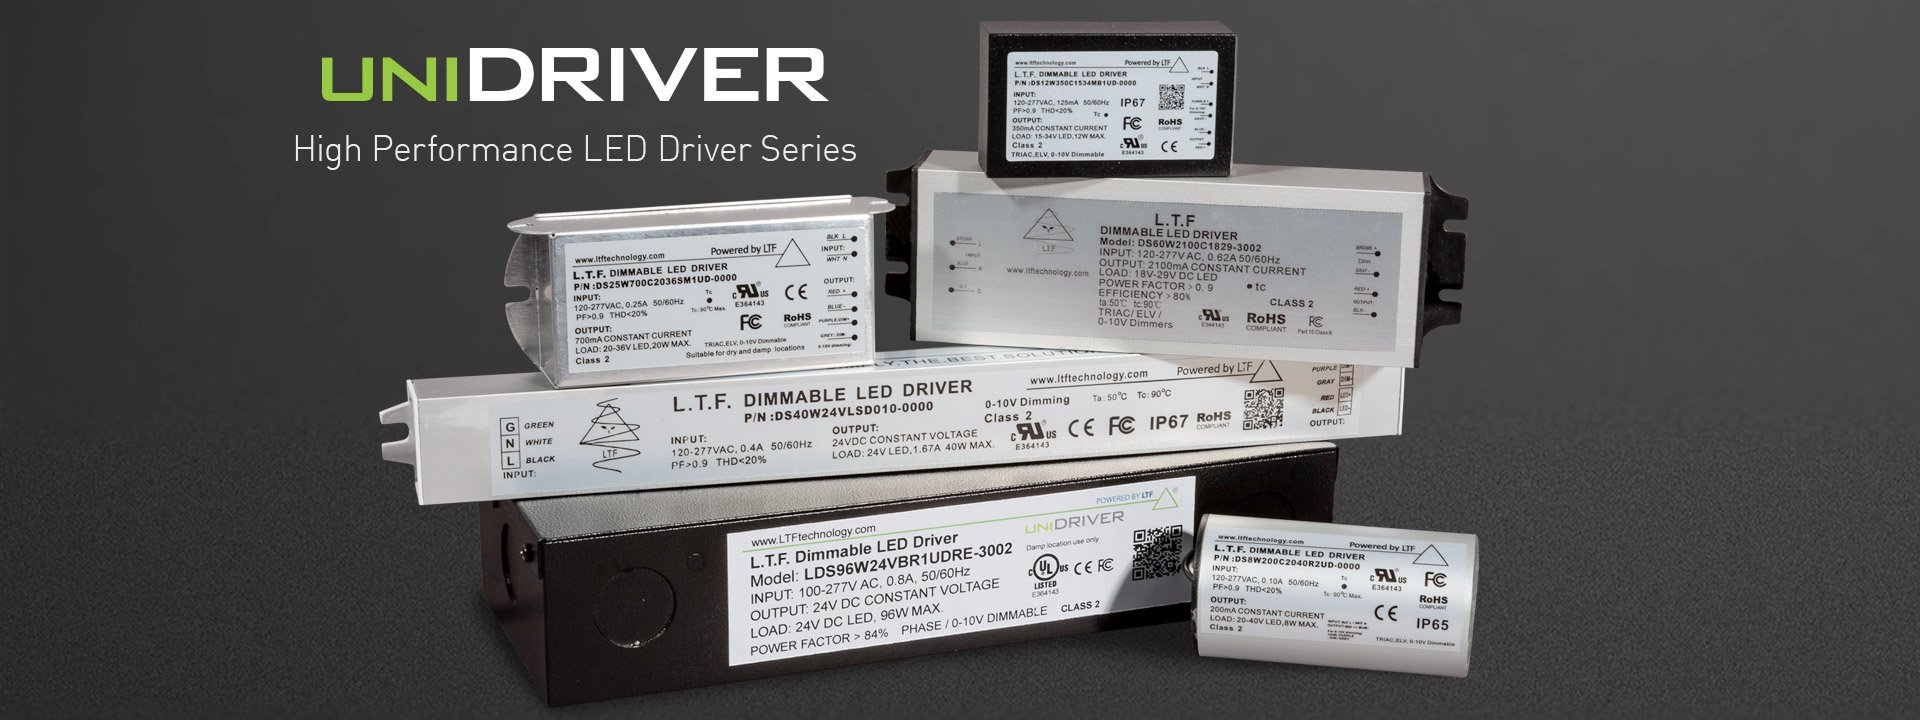 LTF's UniDriver Universal Input Universal Dimming High Performance LED Driver Series